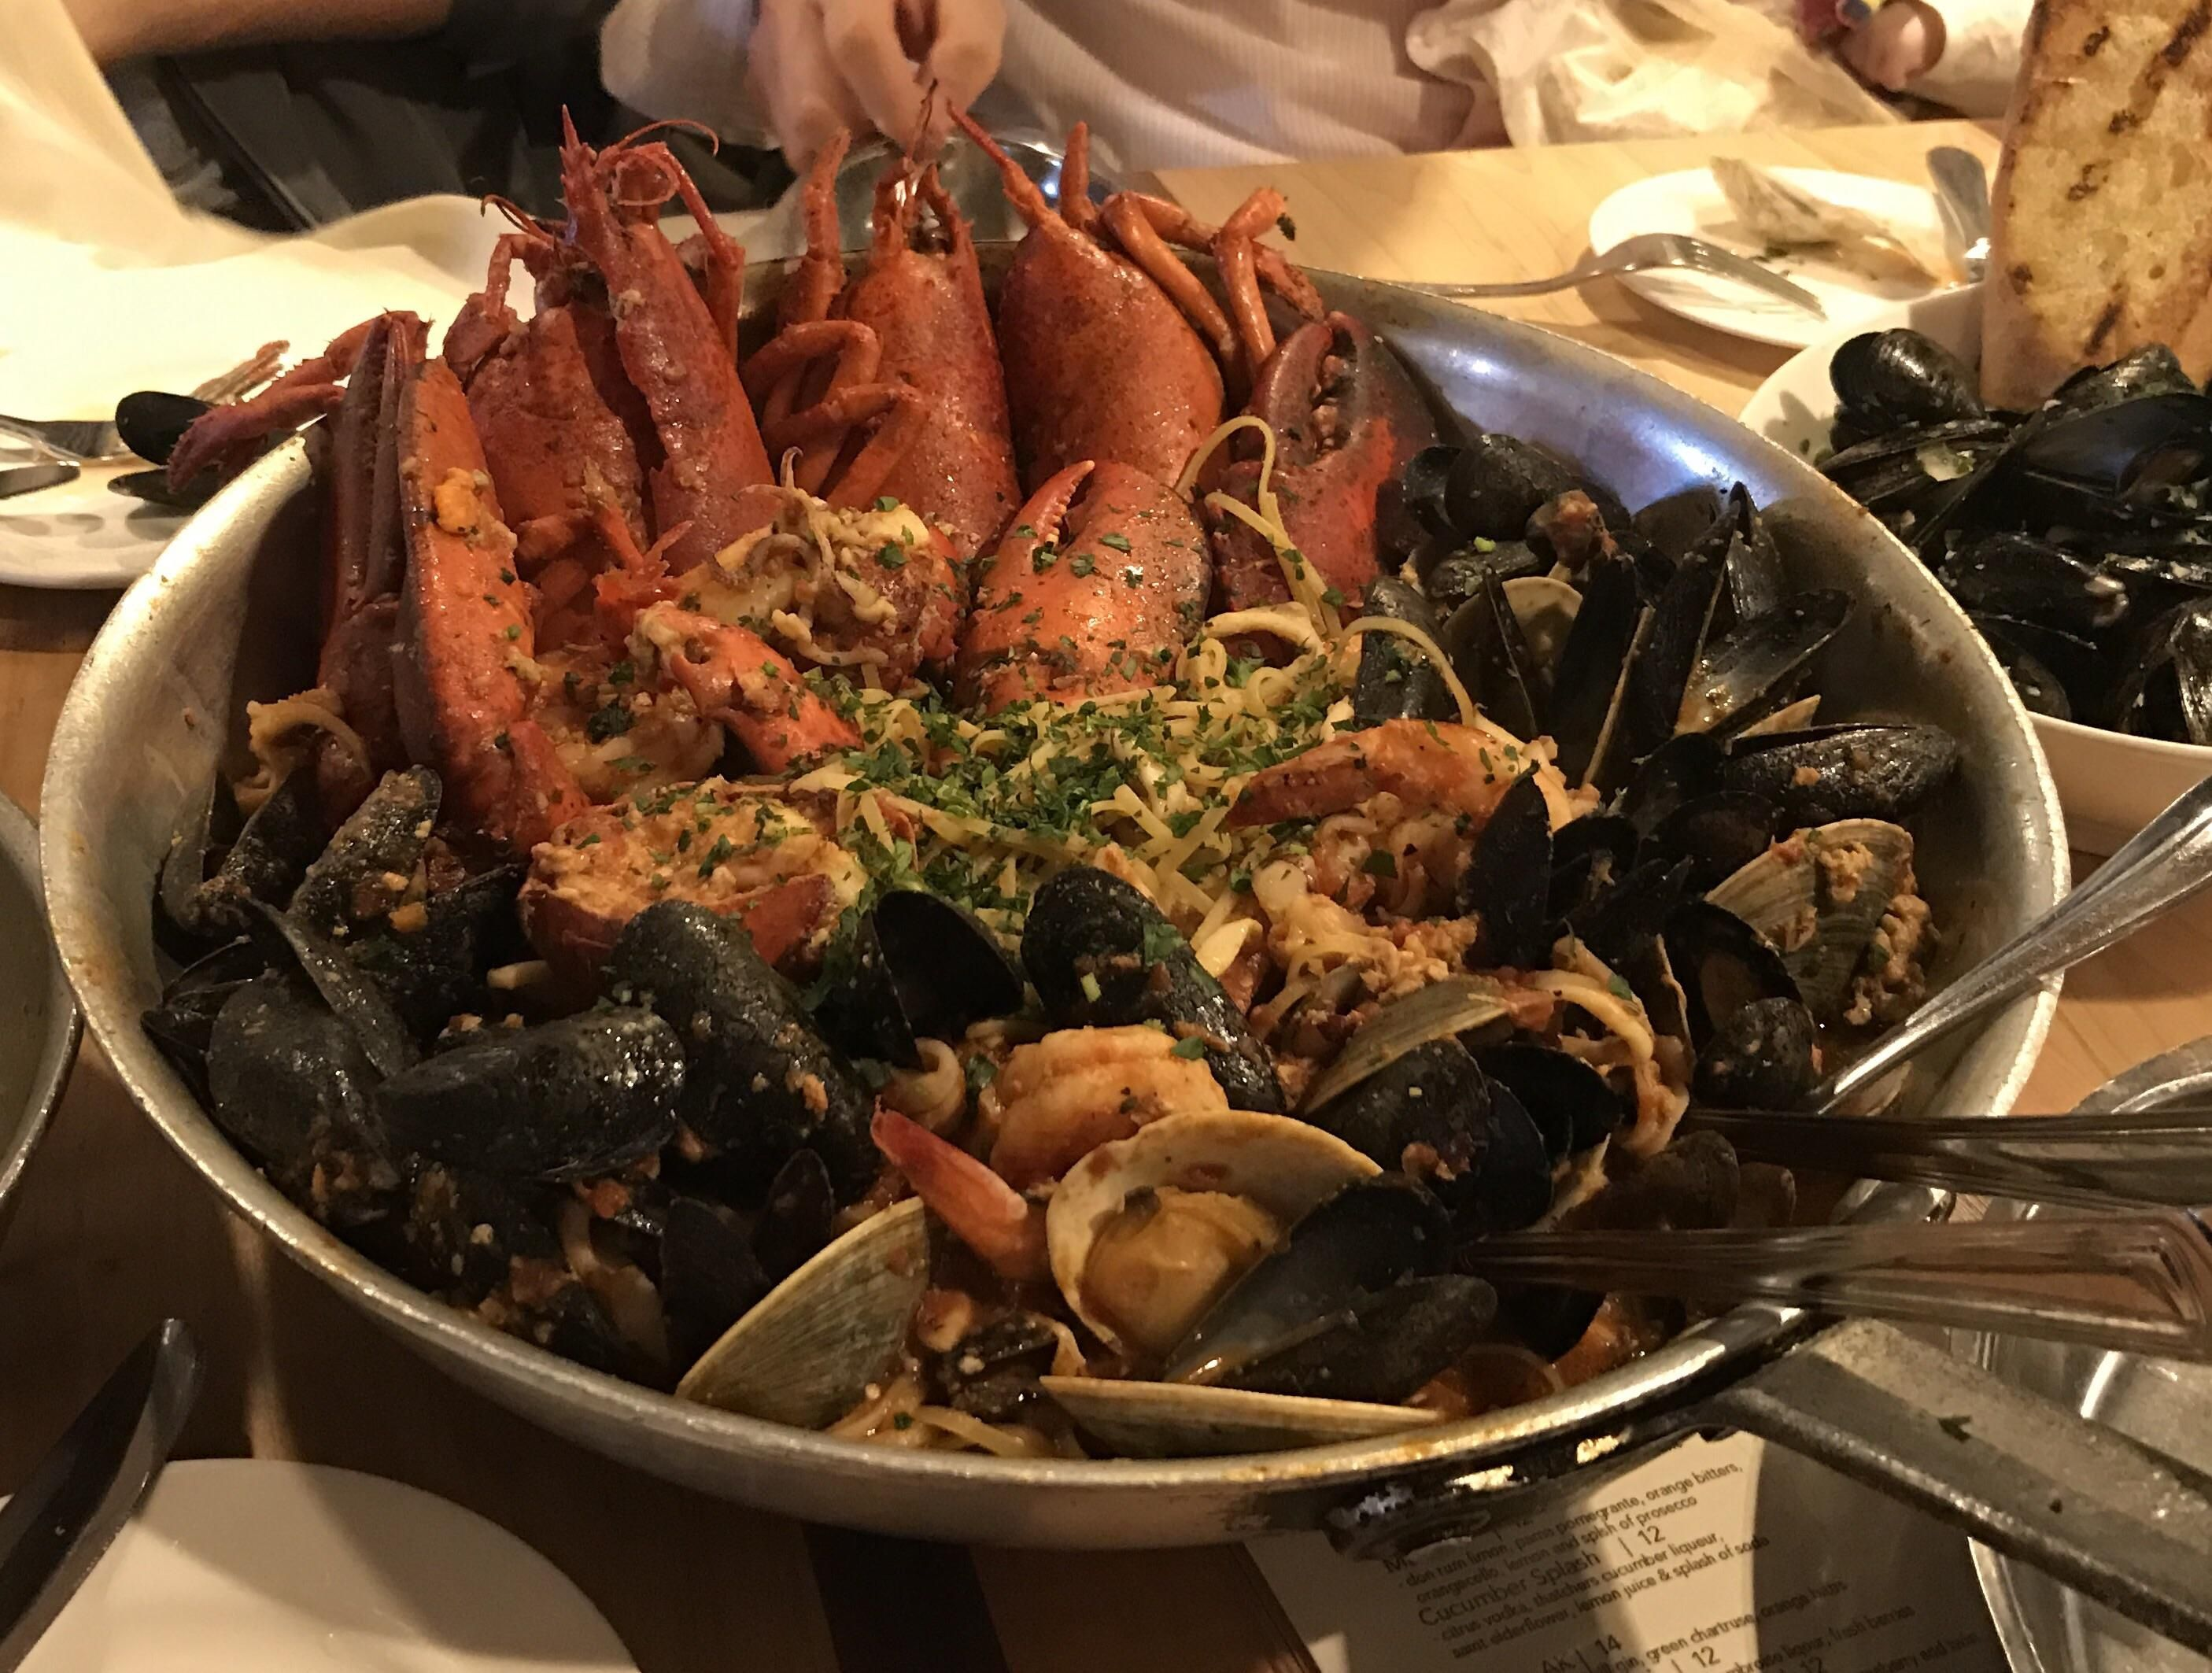 [I ate]Lobster fra diavolo. #recipes #food #cooking #delicious #foodie #foodrecipes #cook #recipe #health